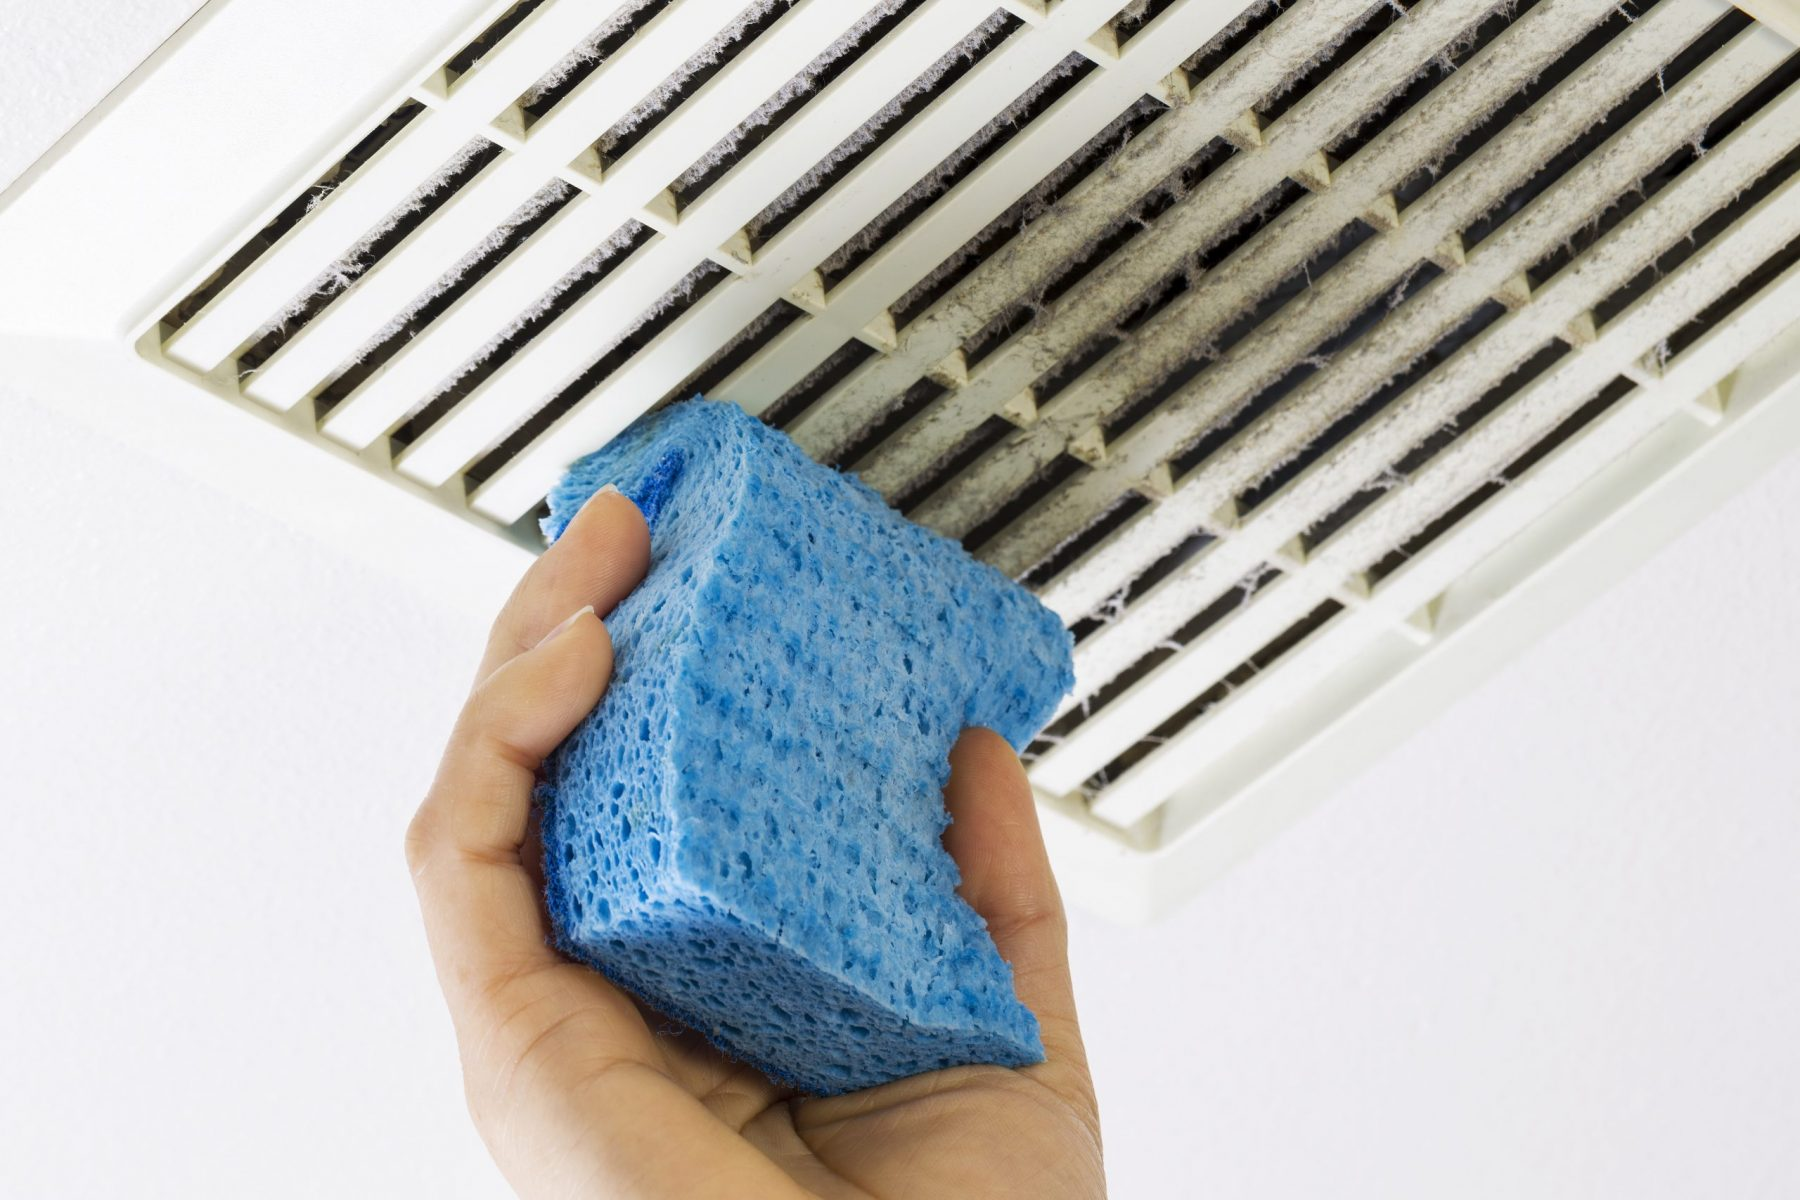 Cleaning vent cover with sponge